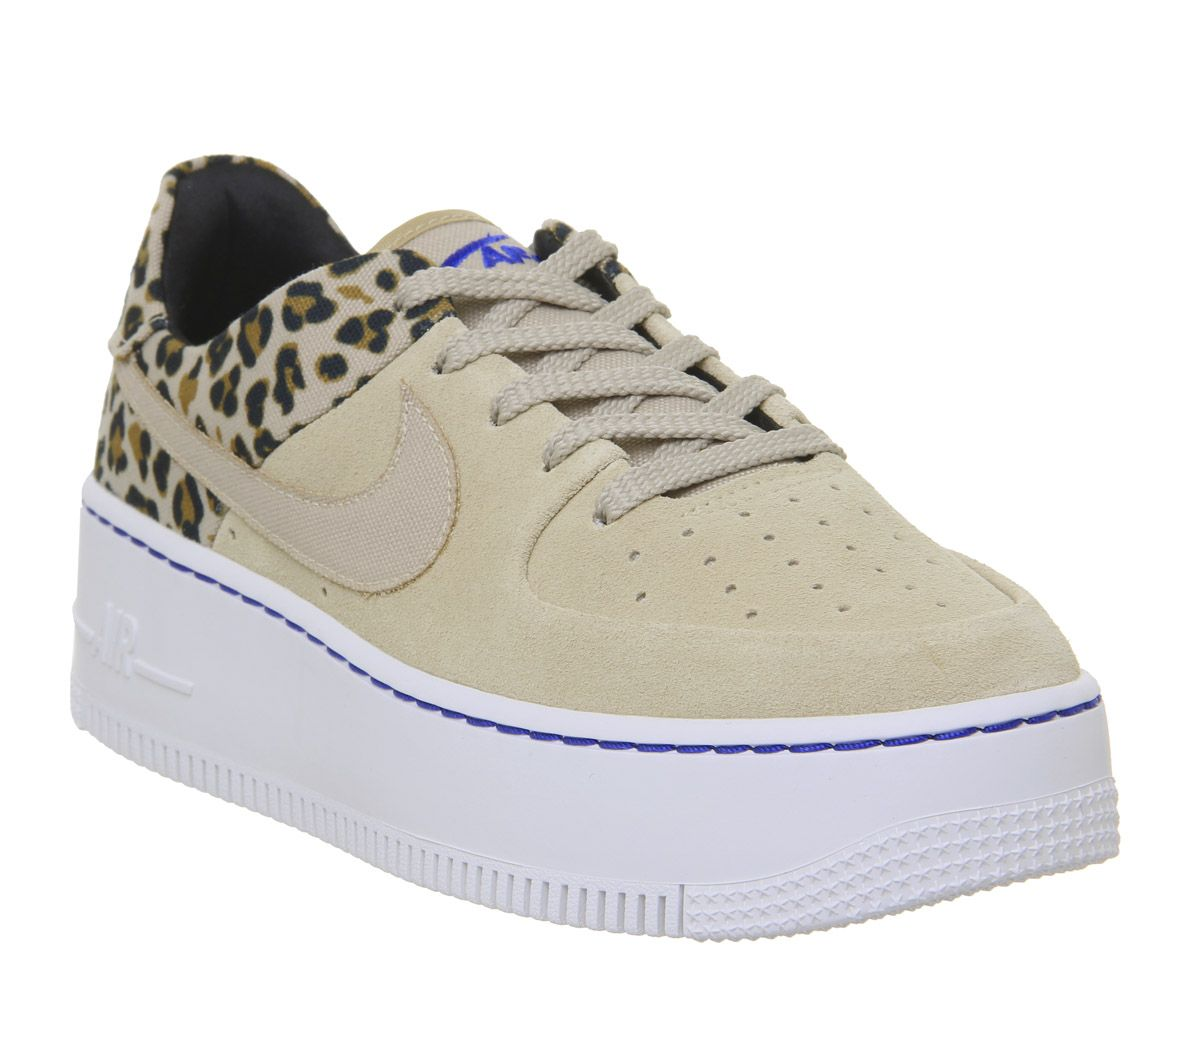 pretty nice 744ee a5bbf Nike Air Force 1 Sage Trainers Desert Ore Wheat Leopard - Hers trainers